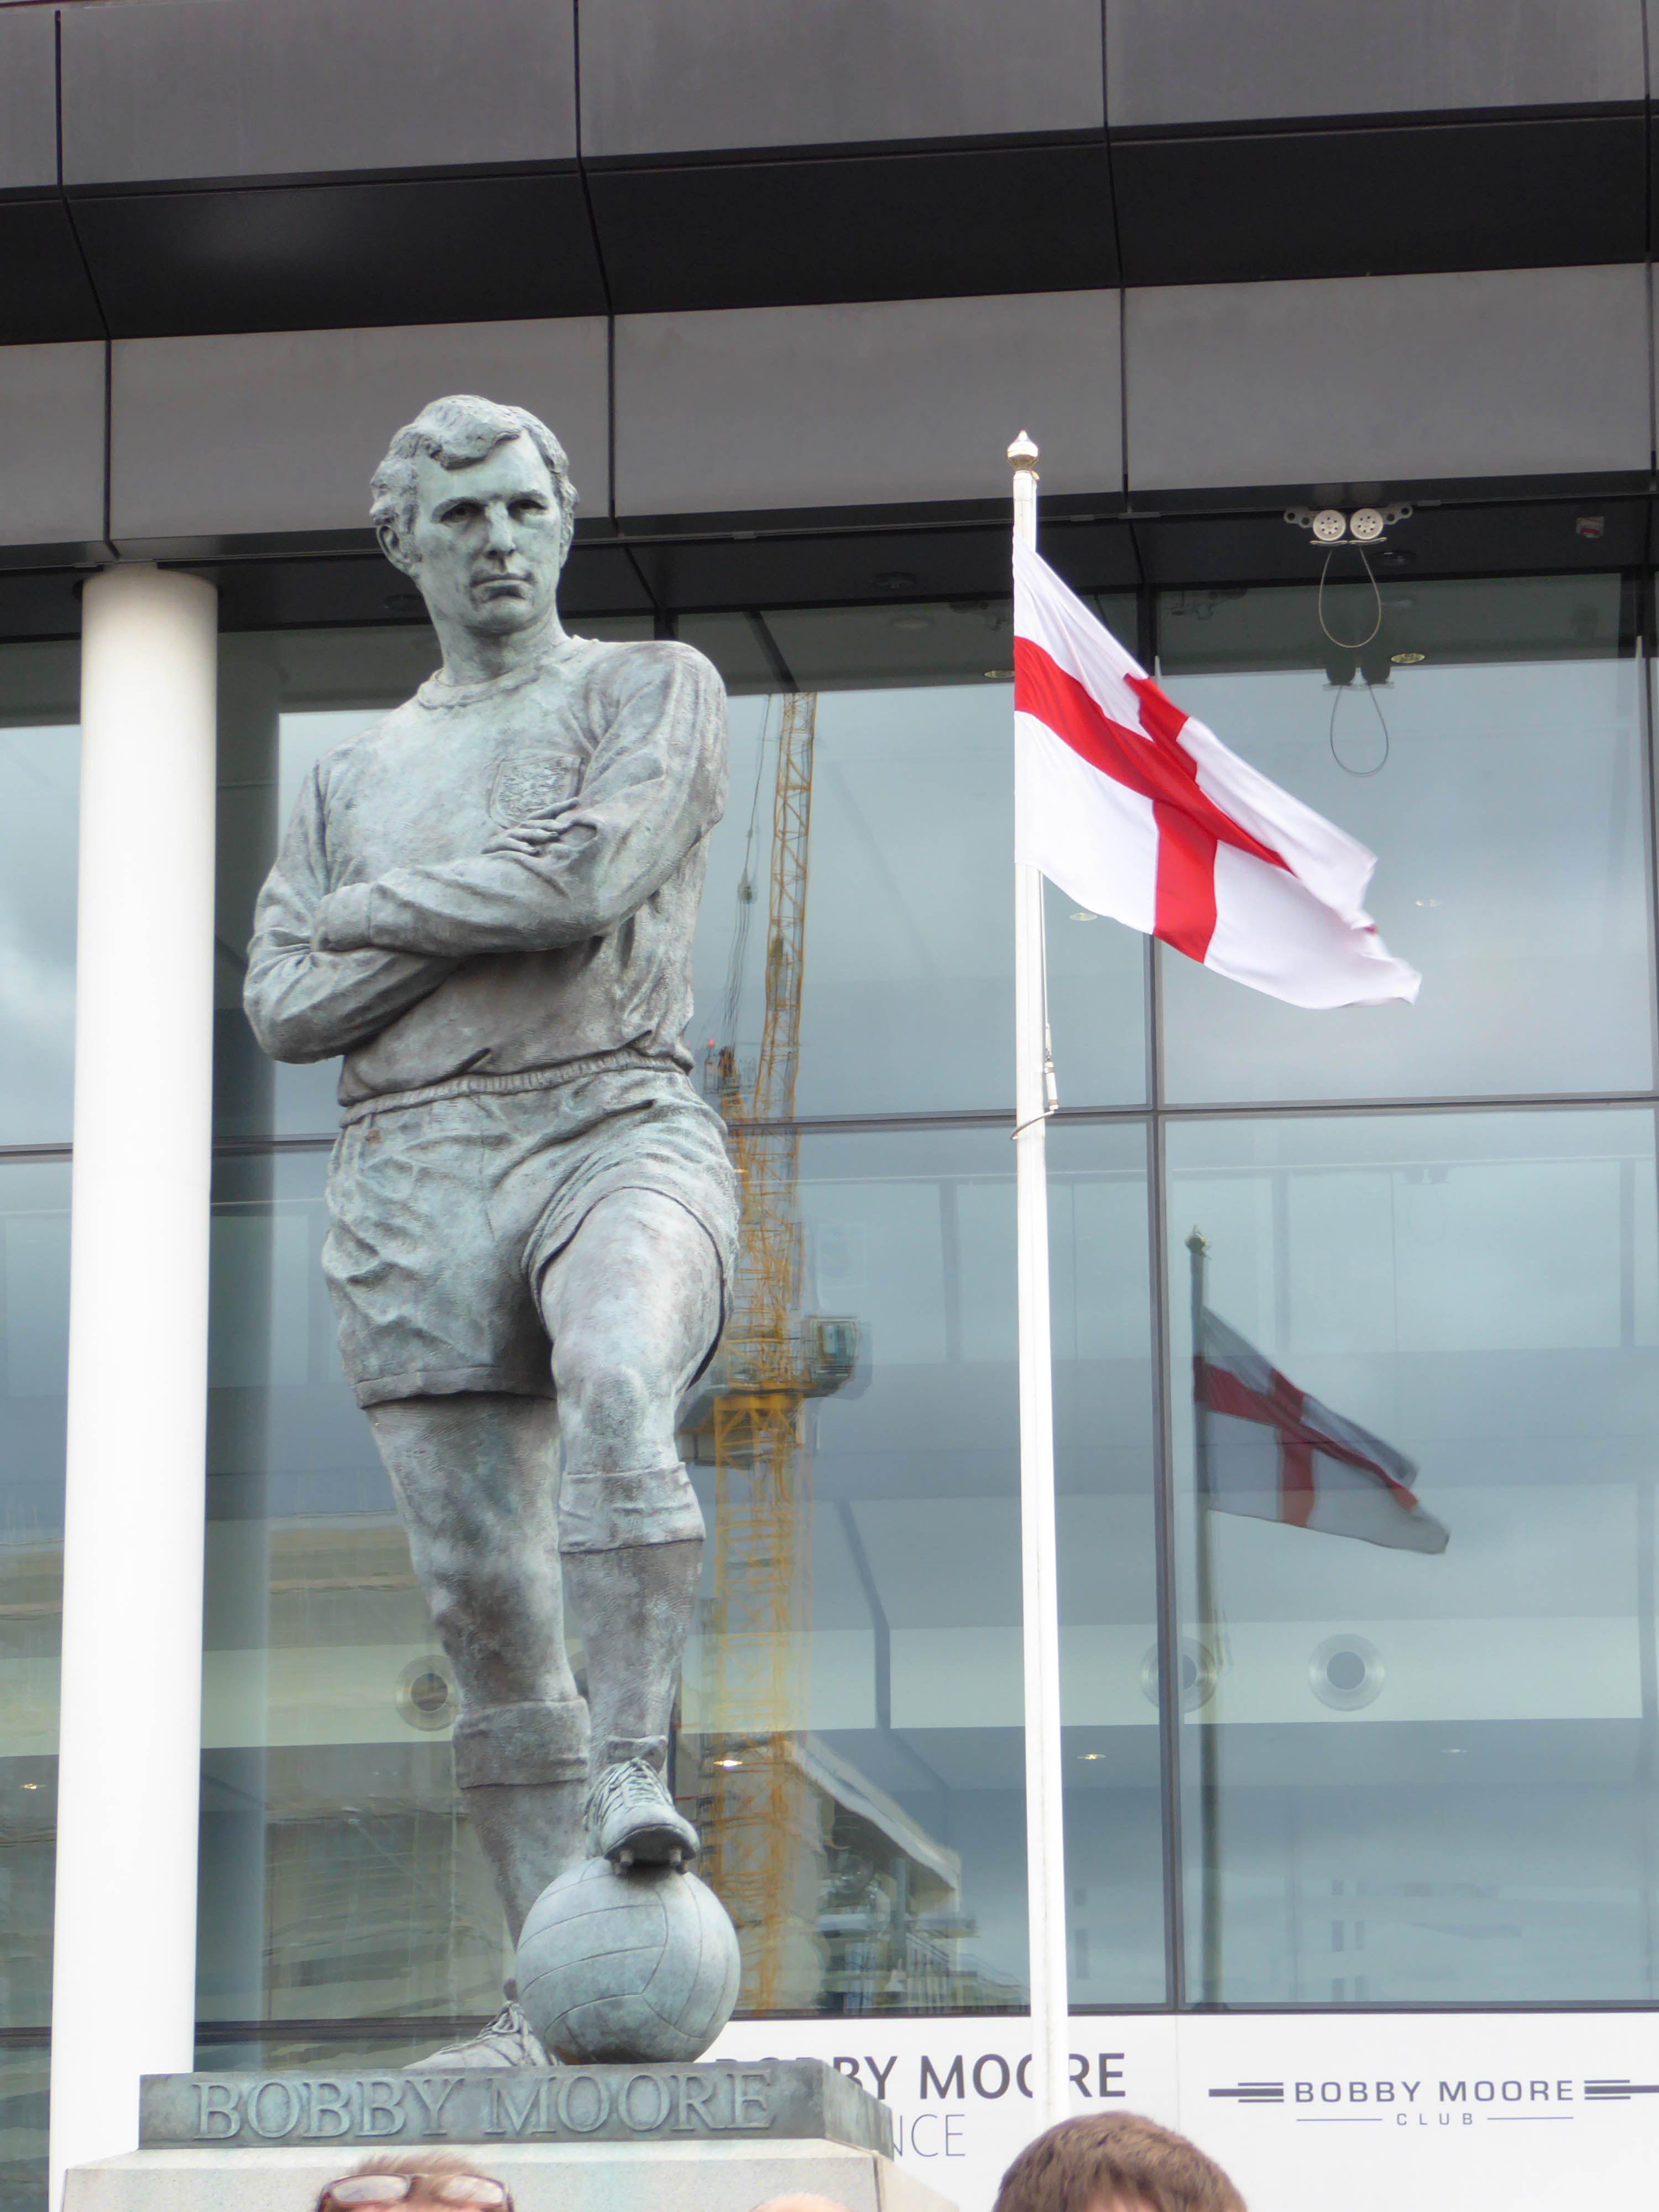 Wembley-Stadium-Bobby-Moore-statue-and-Cross-of-St-George-flag